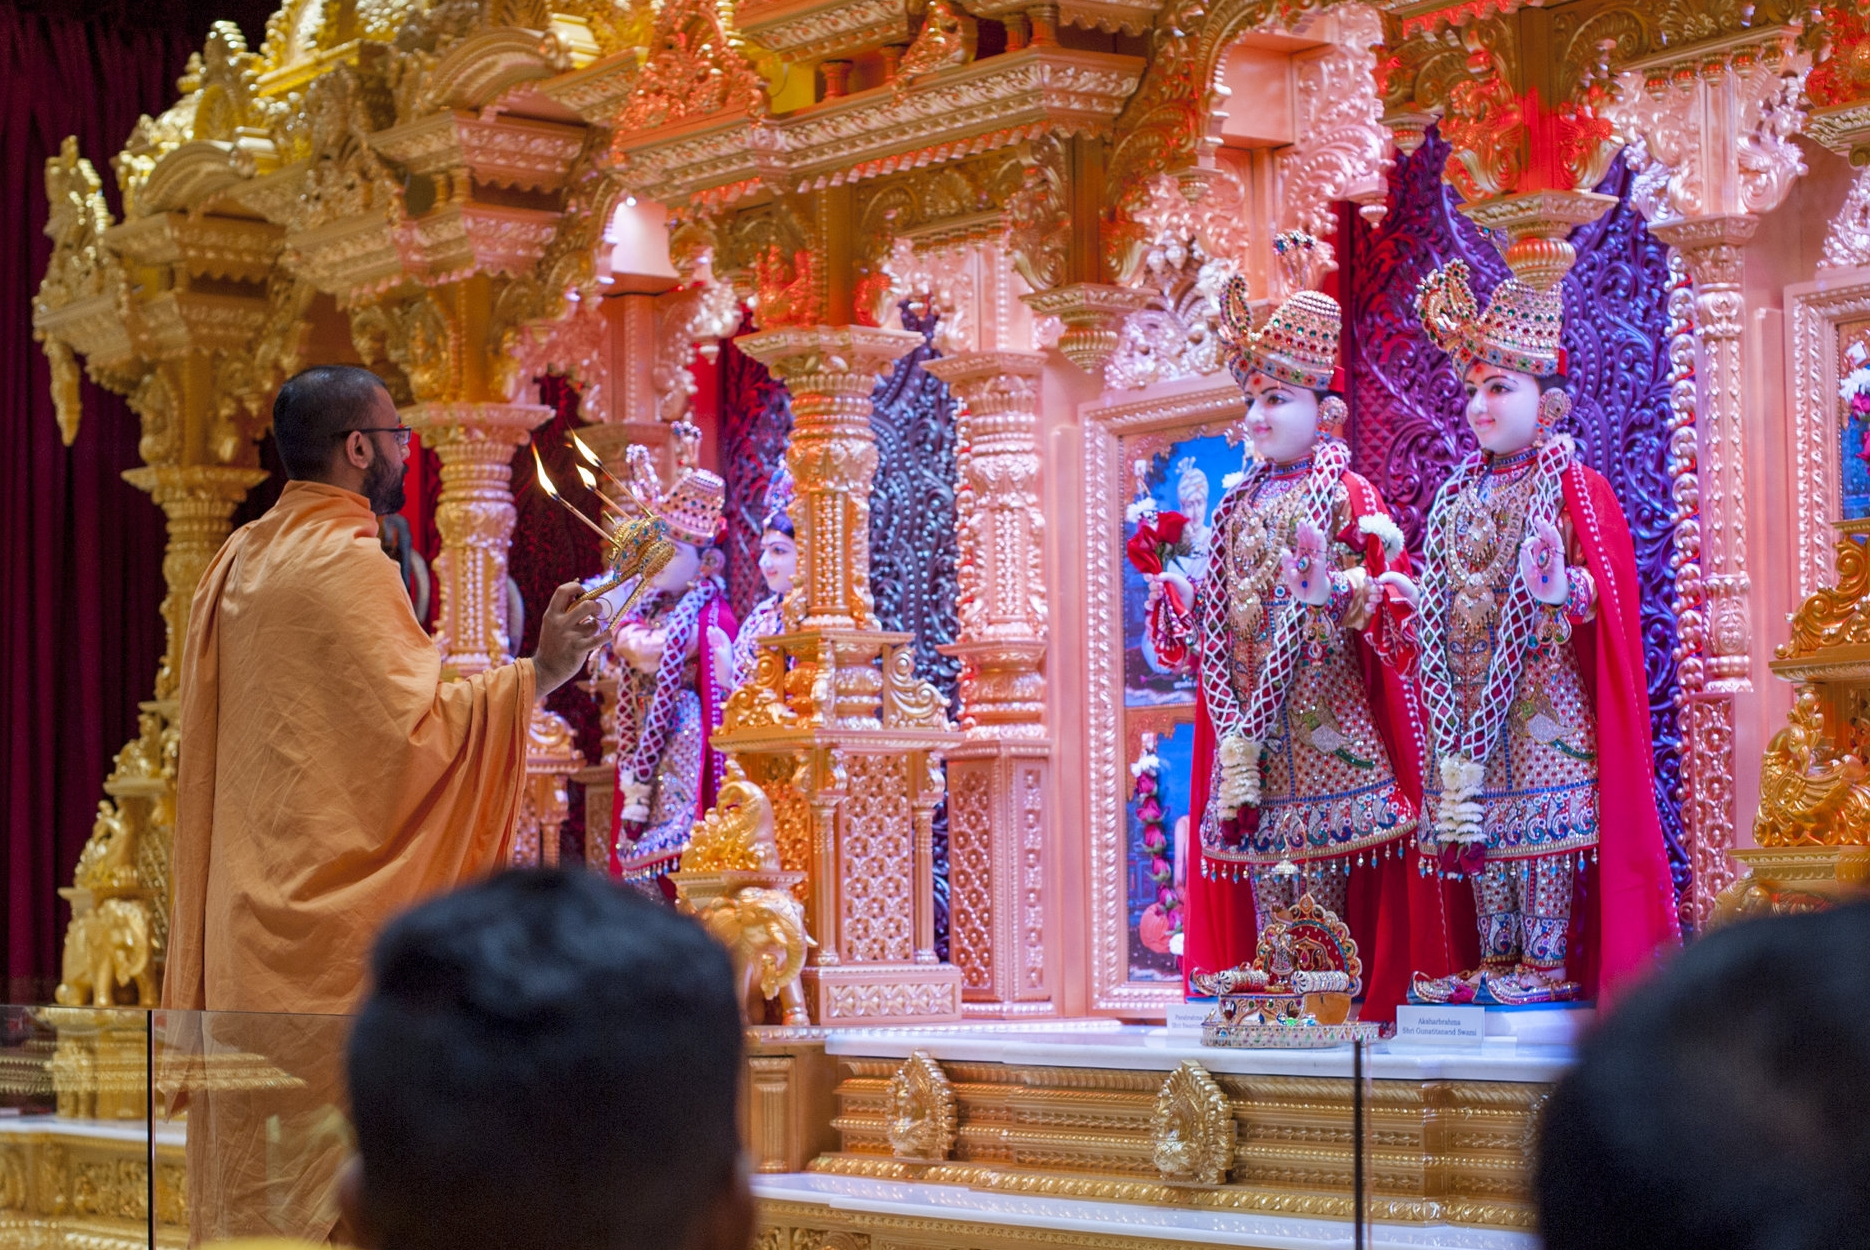 During an evening Arti, the Hindu ceremony of light, attendees clapped and chanted mantras in praise of their guru.